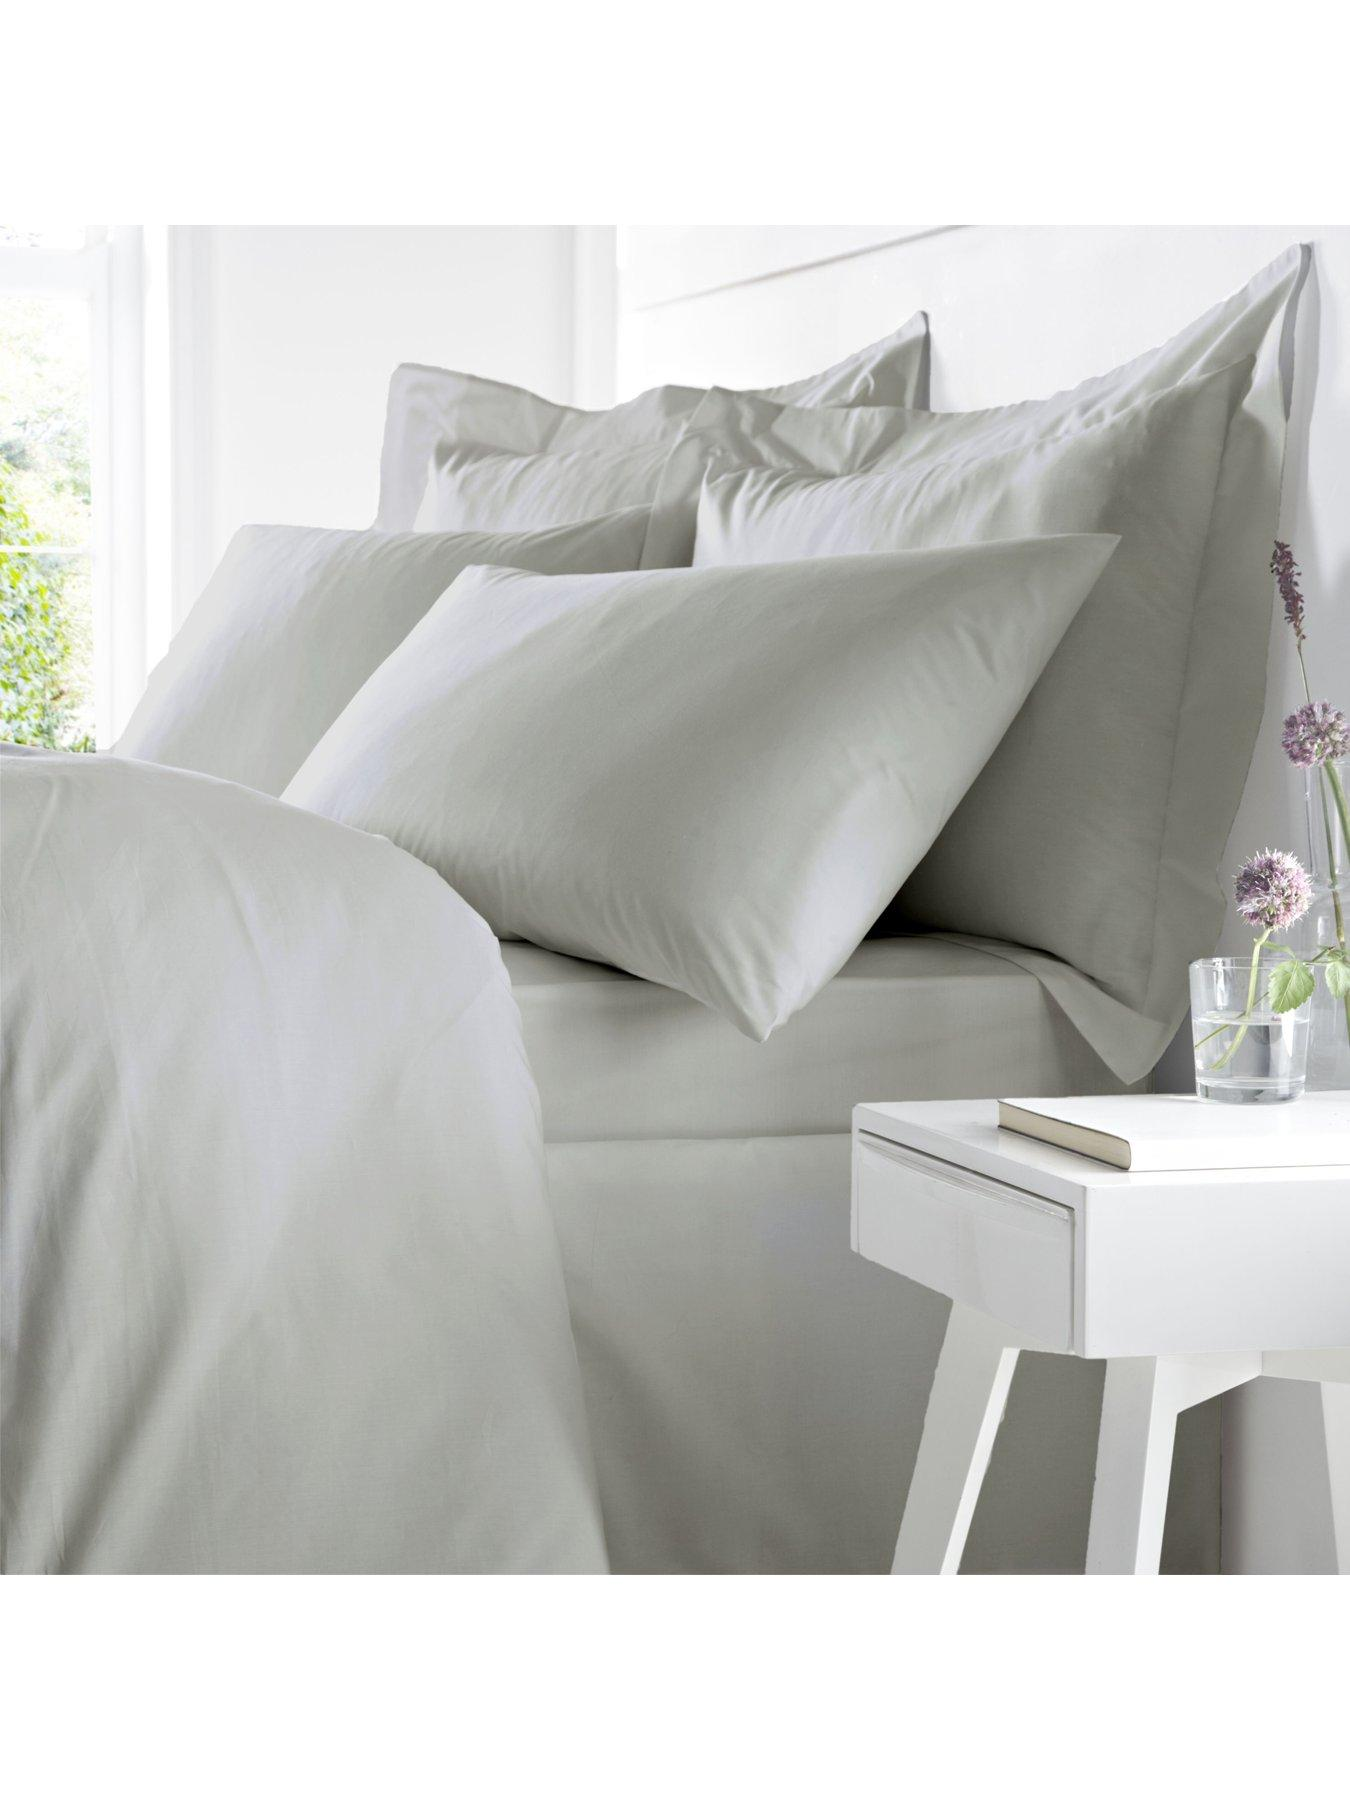 Silentnight Brushed Cotton Fitted Sheet Single Size Natural Beige NEW